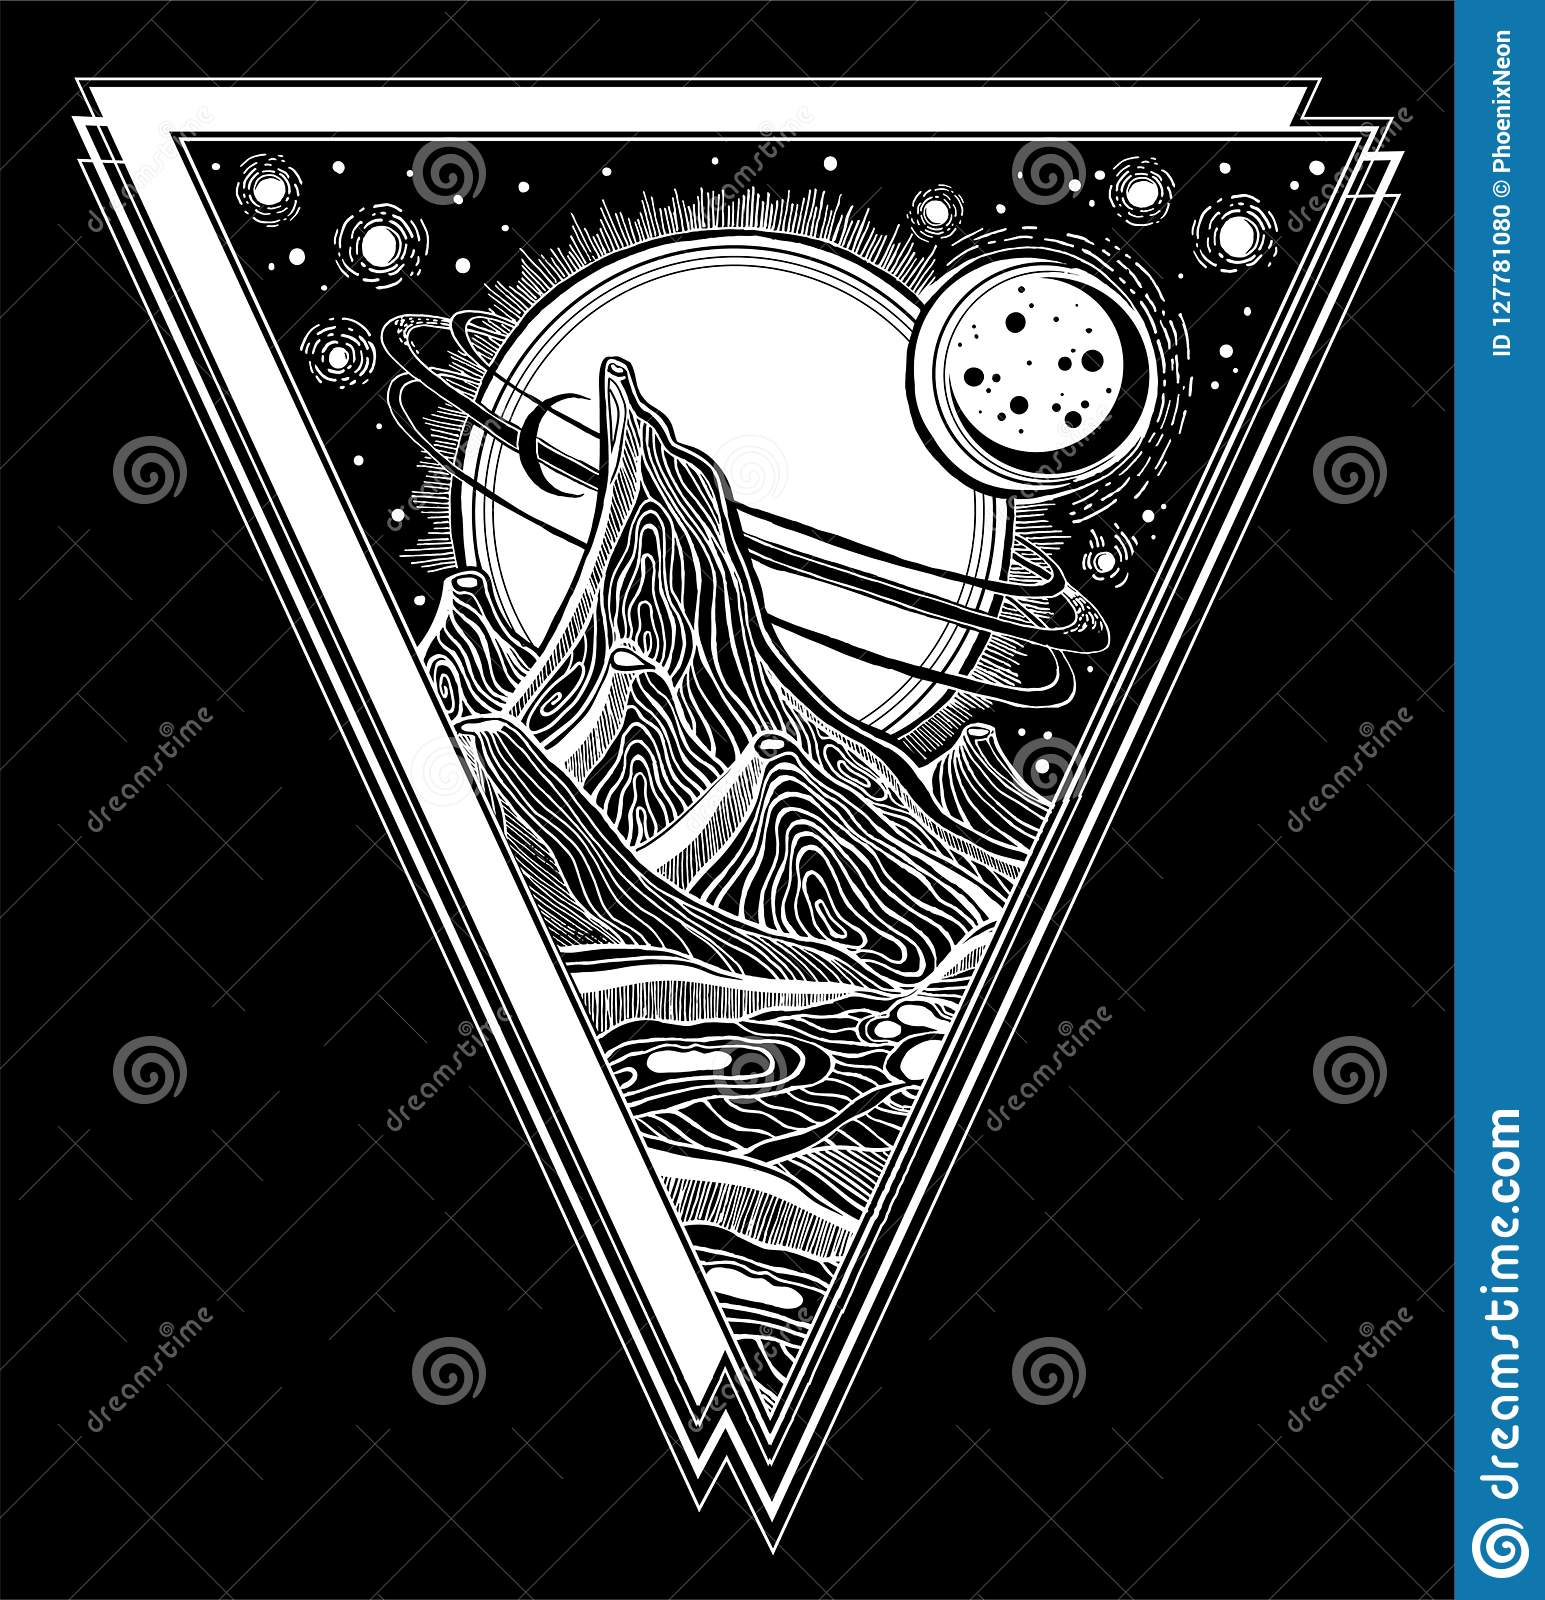 ece8ea950 Fantasy linear alien landscape with mountains, stars, Jupiter and sun.  Another planet. Tattoo art. Infinite space, sci-fi symbols, travel,  futurism.